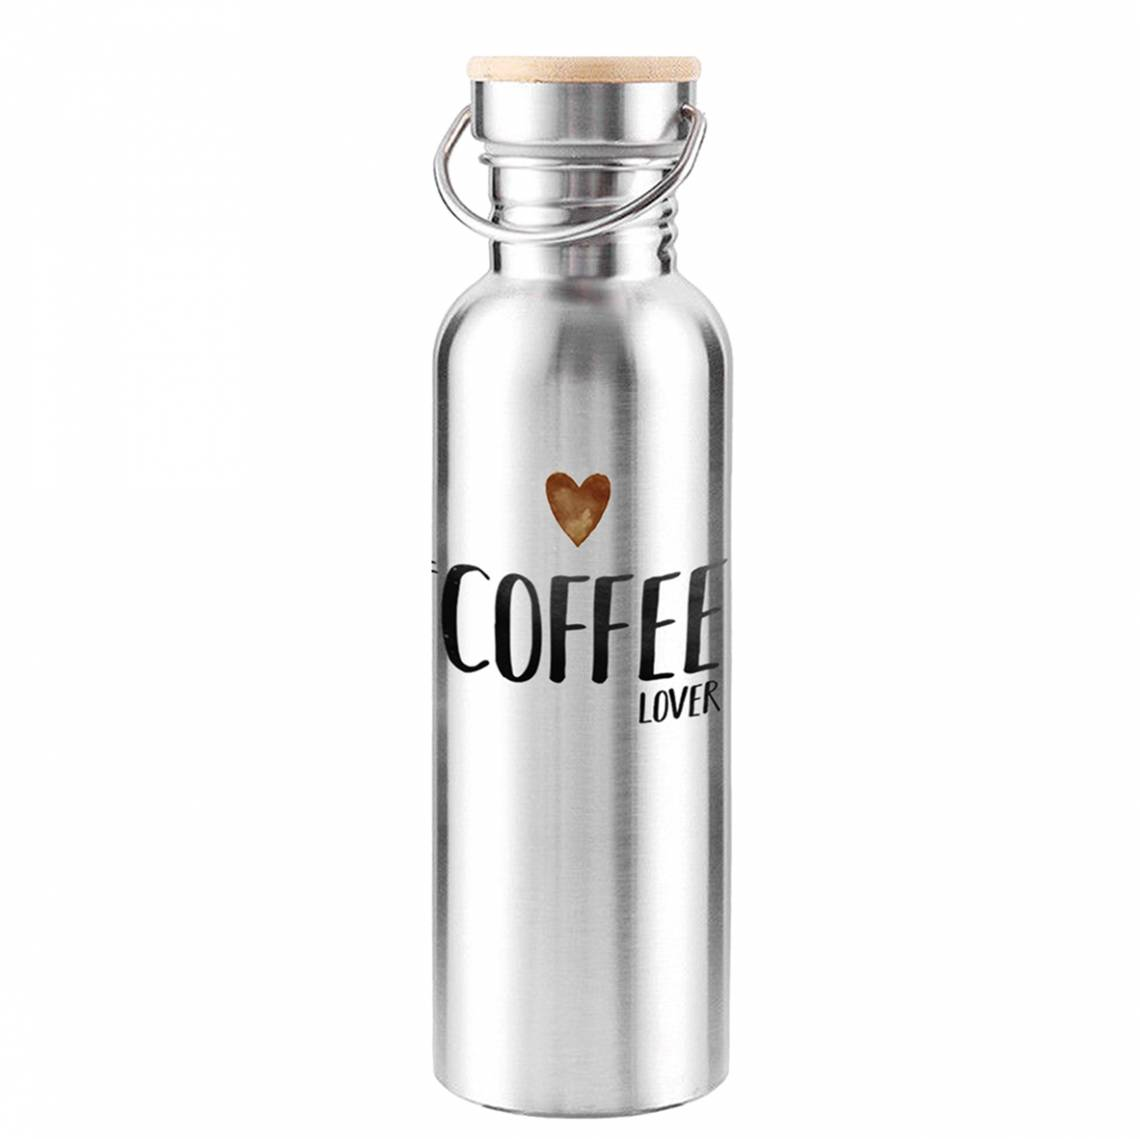 ppd Stainless Steel Bottles - Coffee Lover - 603882